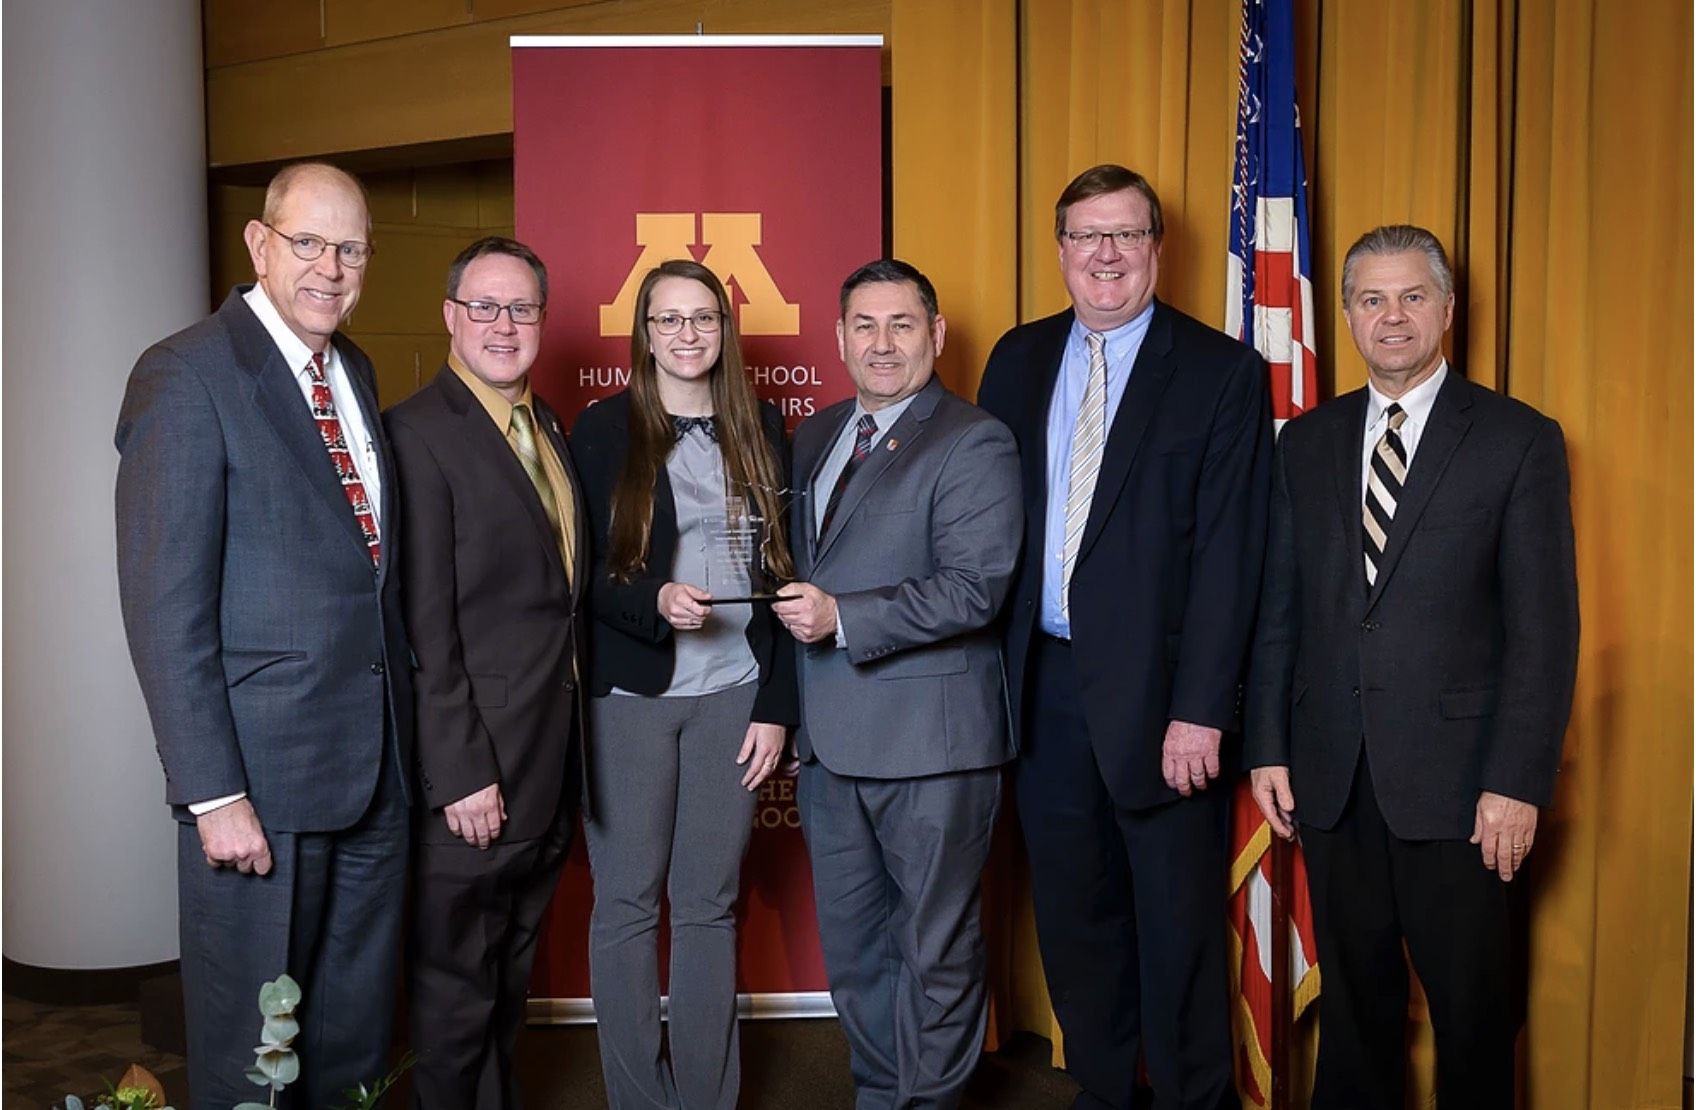 The Morris Model team accepts the 2017 MN Local Government Innovation Award for demonstrating outstanding leadership in improving city infrastructure, planning, and in the case of Morris, sustainability.